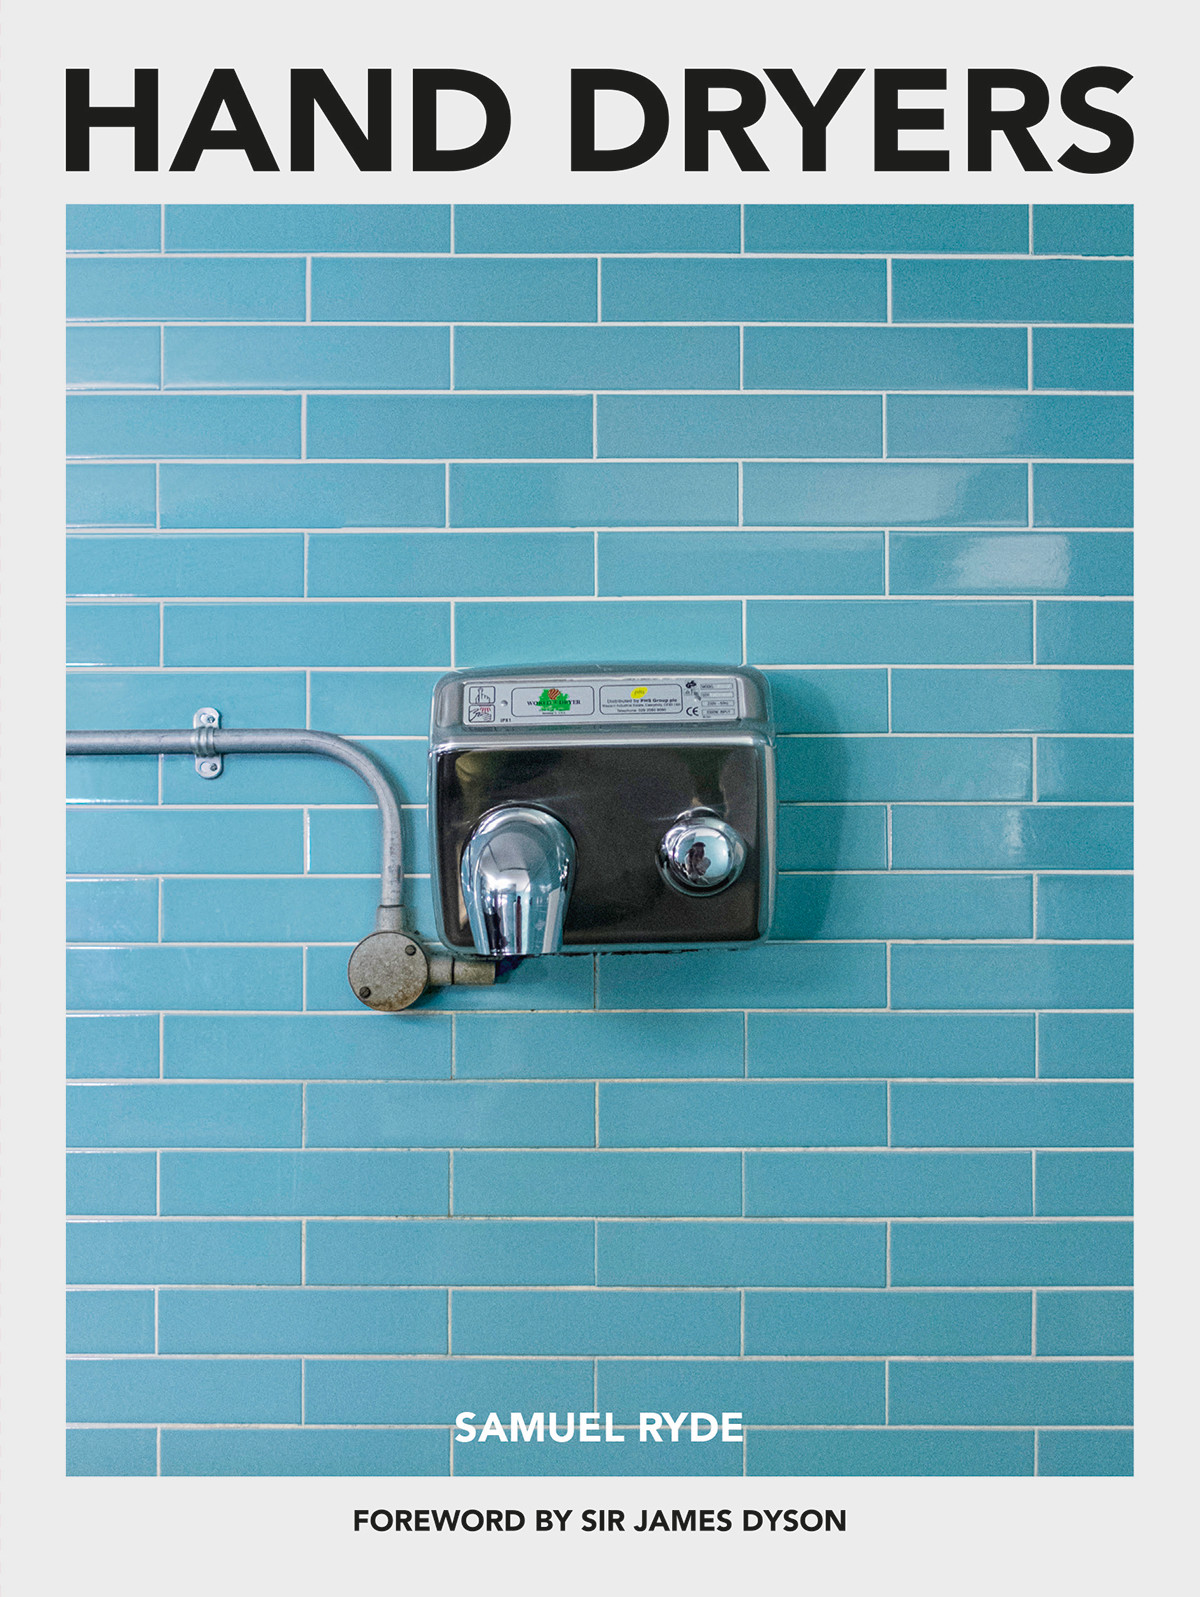 The cover of Hand Dryers, a new photo book by Samuel Ryde